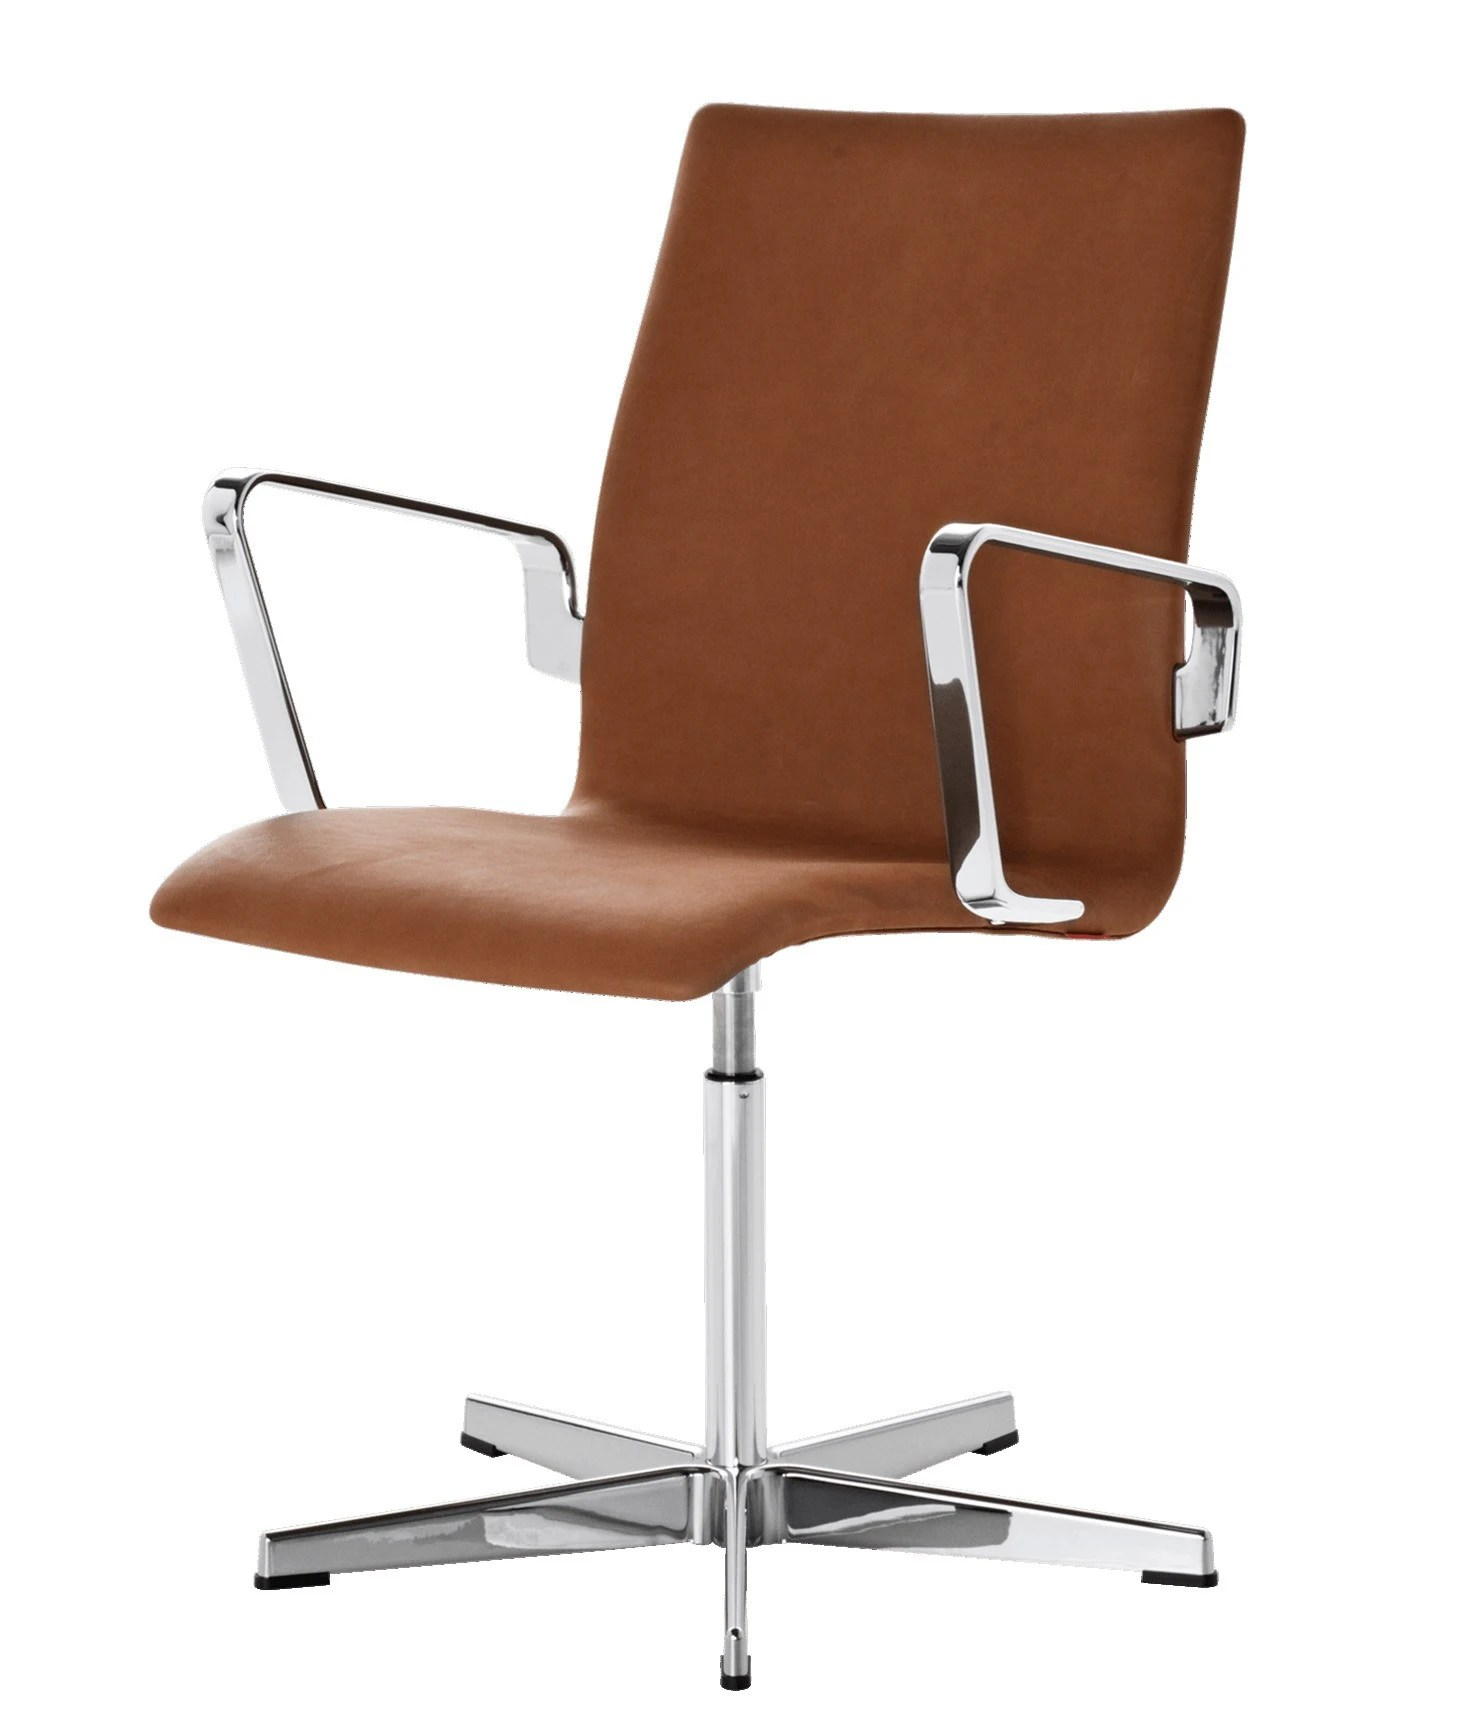 Fritz Hansen Chairs Fritz Hansen Oxford Classic Low Back Chair Fixed Seat Height With Toes